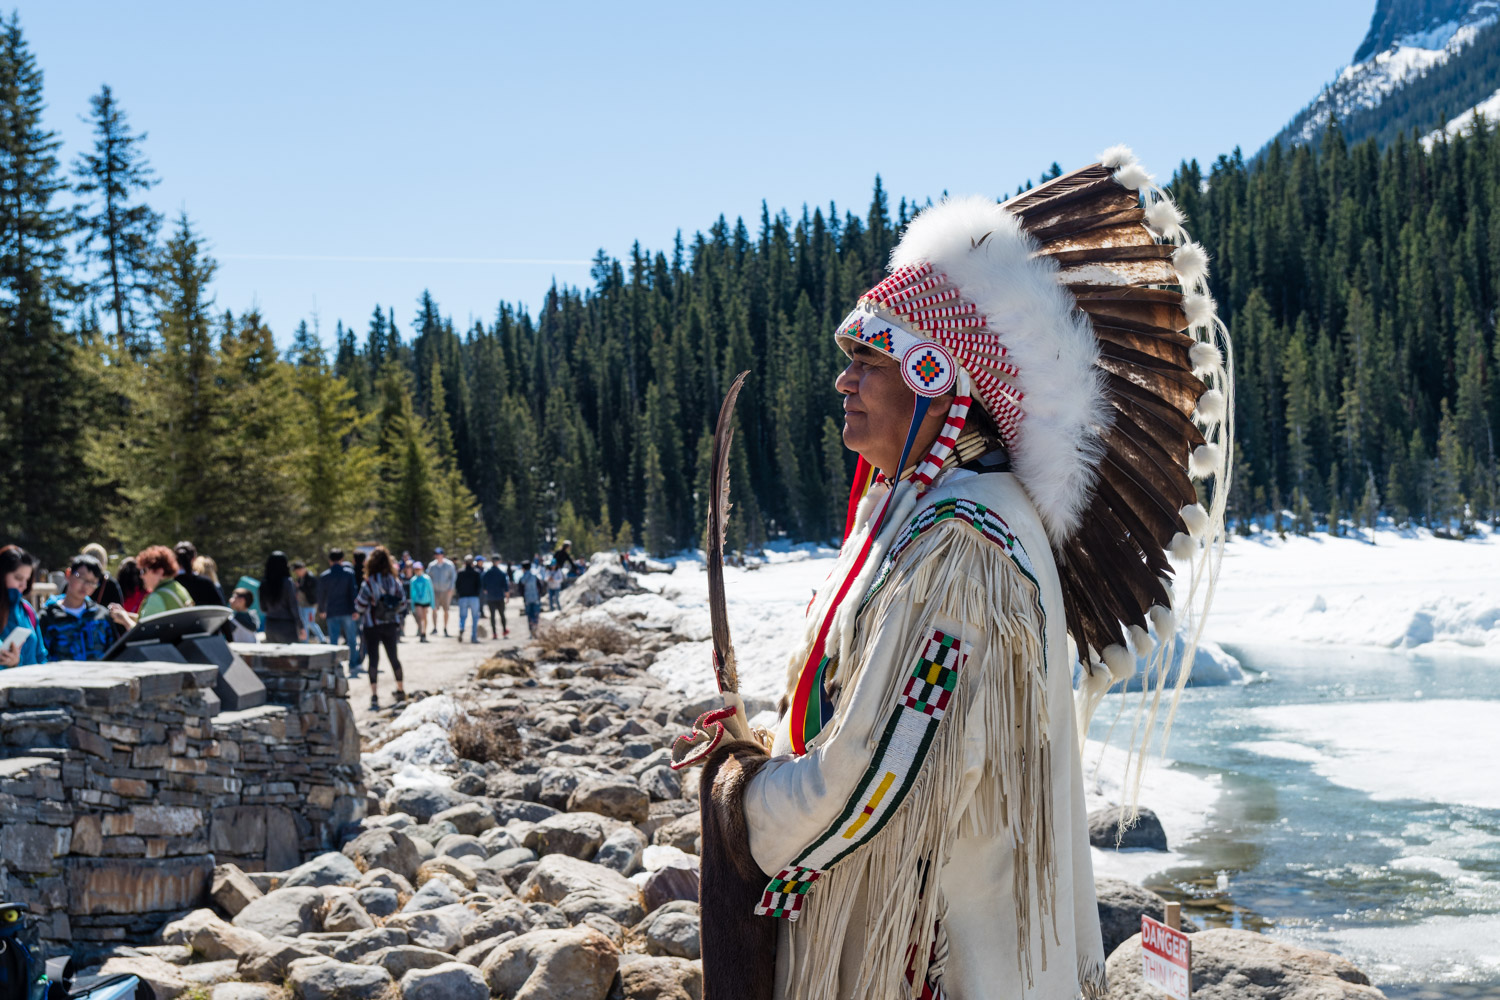 The Indian Chief. He was from the Stoney Nakoda Tribe.